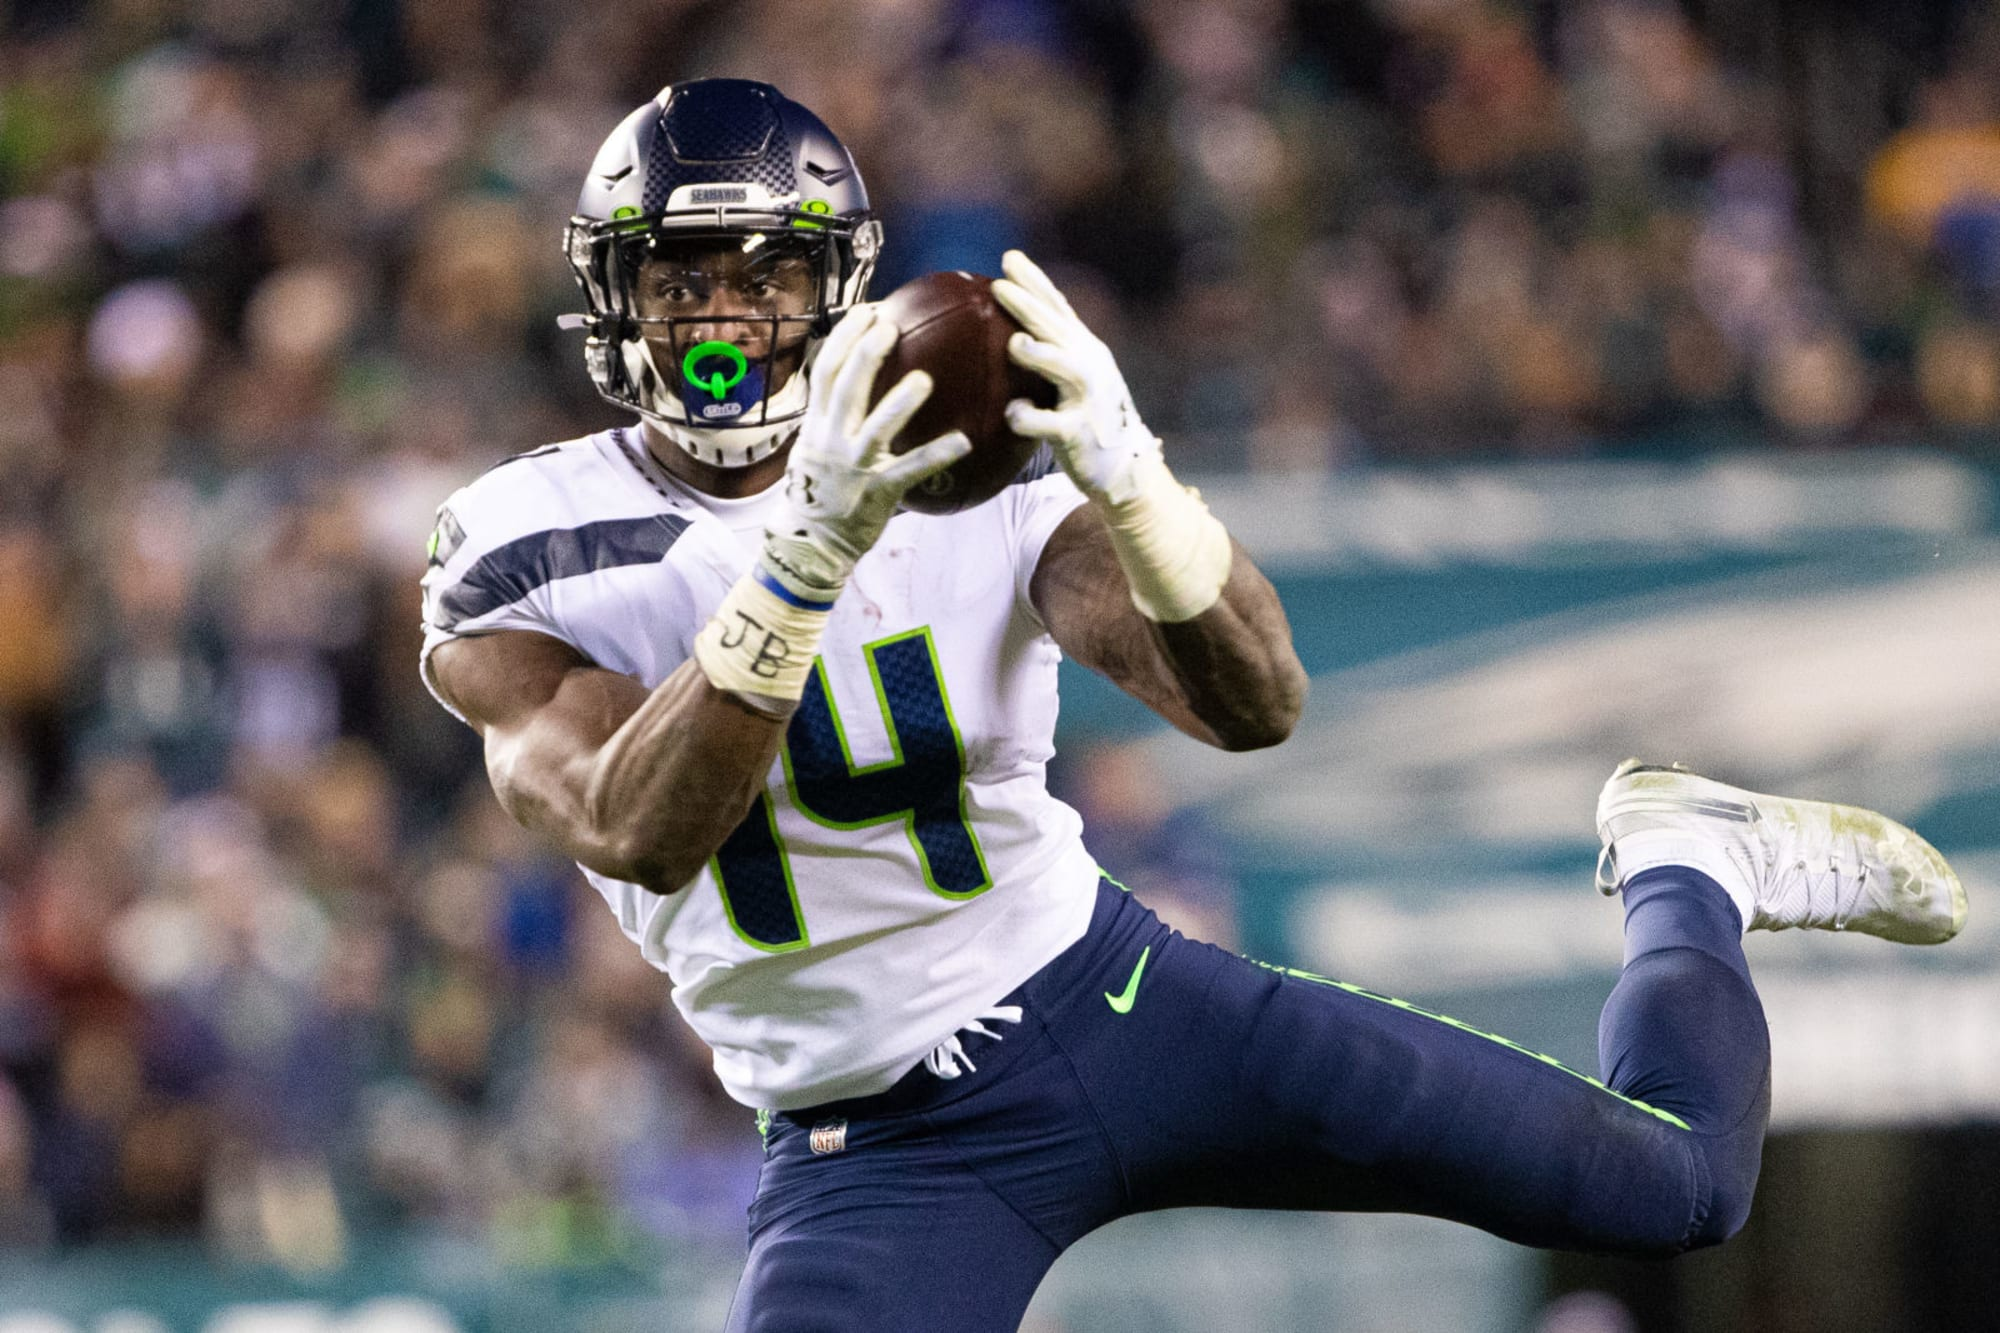 Seahawks' star D.K. Metcalf sends message to his haters on LinkedIn